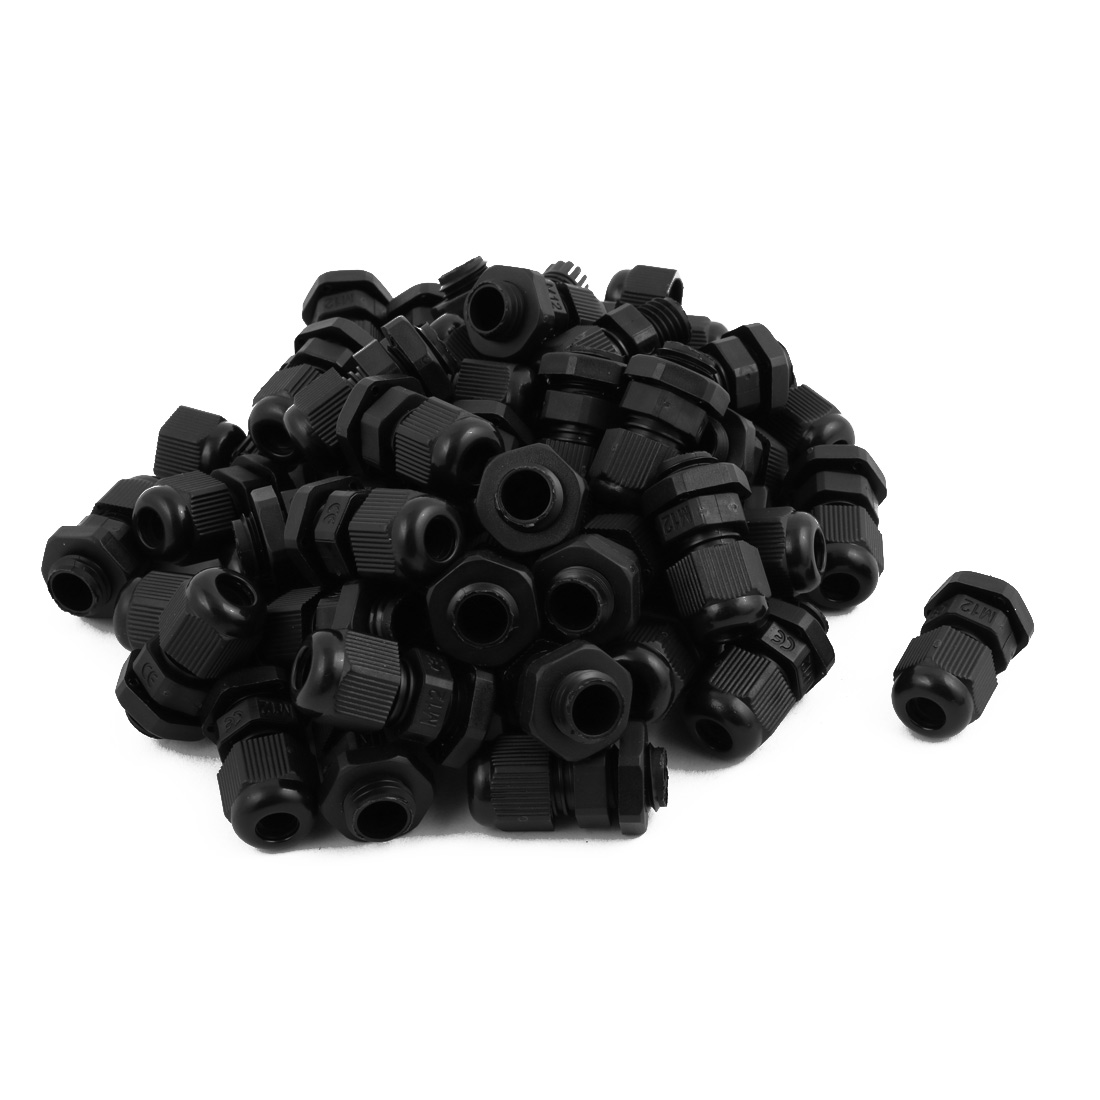 M12 Plastic Waterproof Connectors Cable Glands Connector 49 Pcs Black